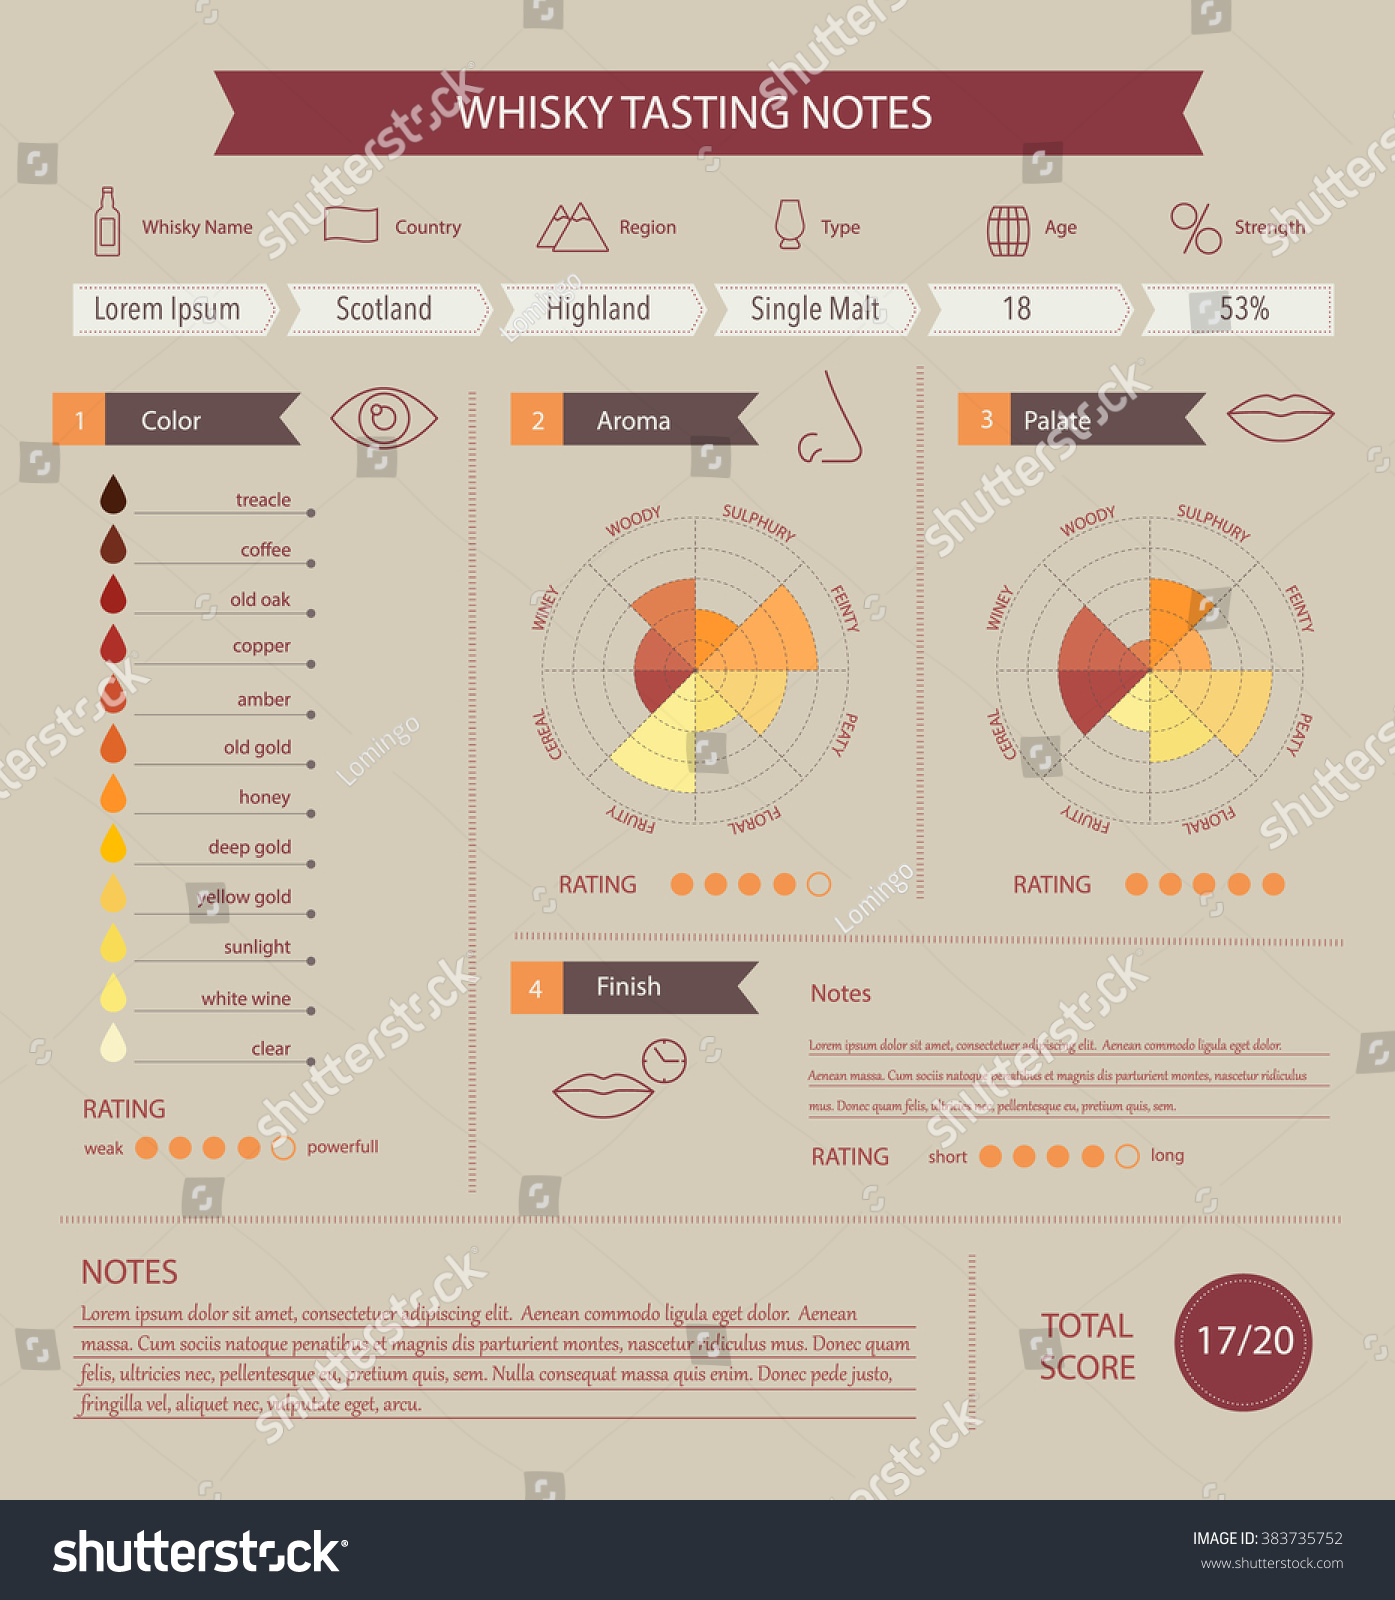 Whisky Tasting Notes Template Describe Whisky Stock Vector Royalty